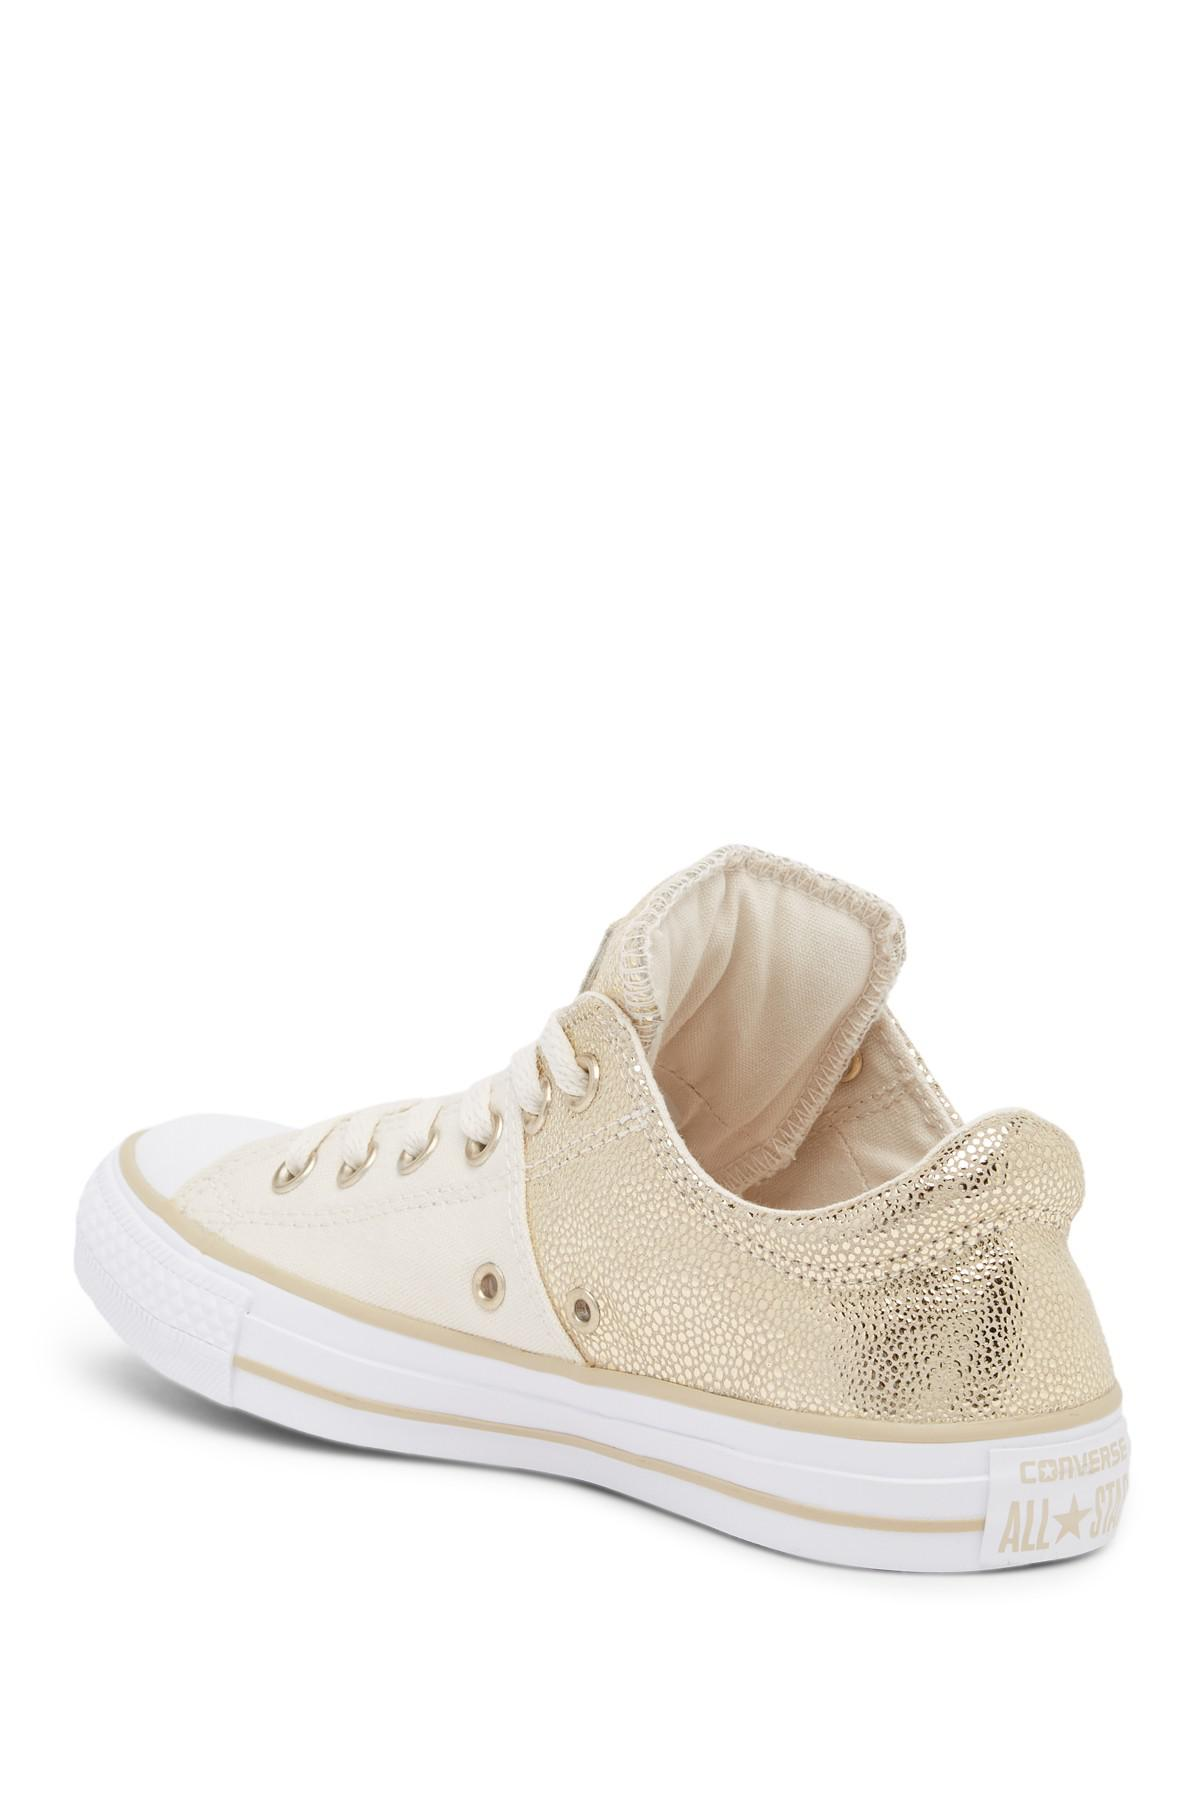 0b618b45f8c0 Lyst - Converse Chuck Taylor All Star Madison Metallic Low Top ...